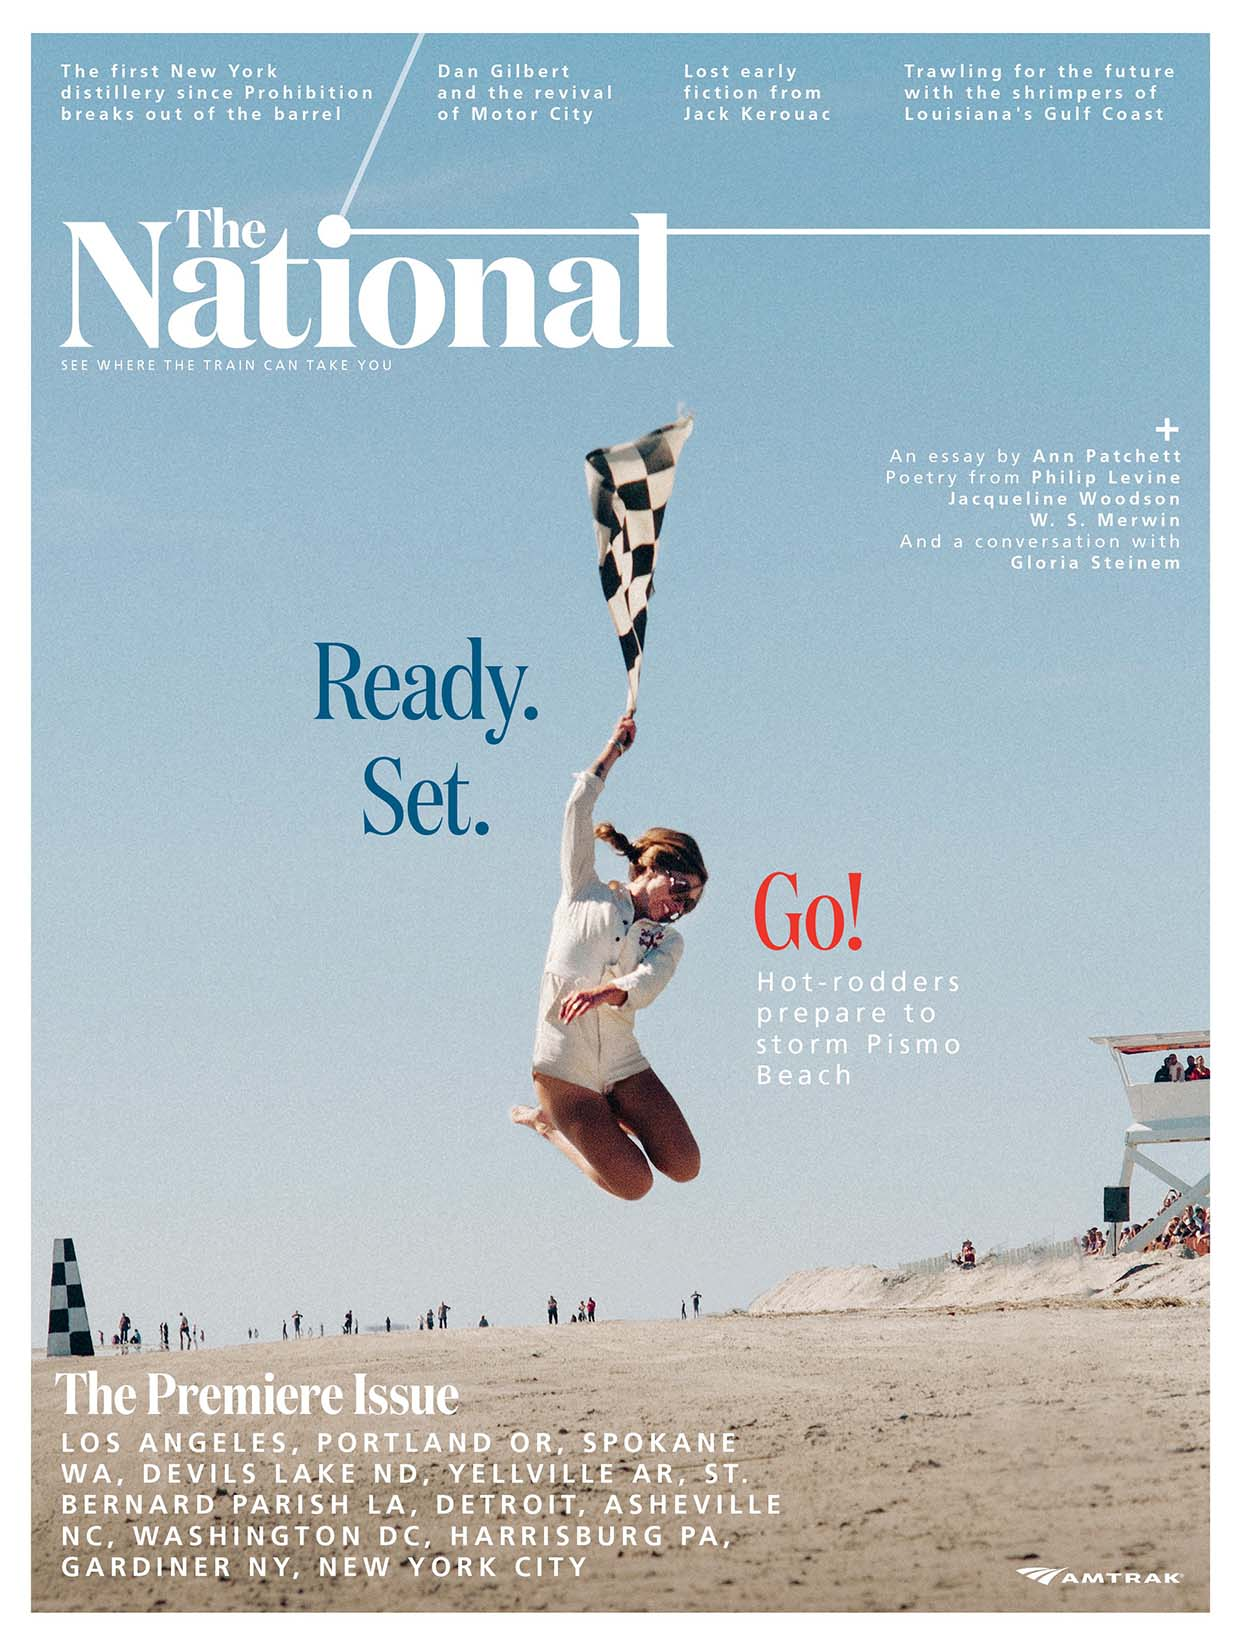 The National Magazine: Premier edition cover.